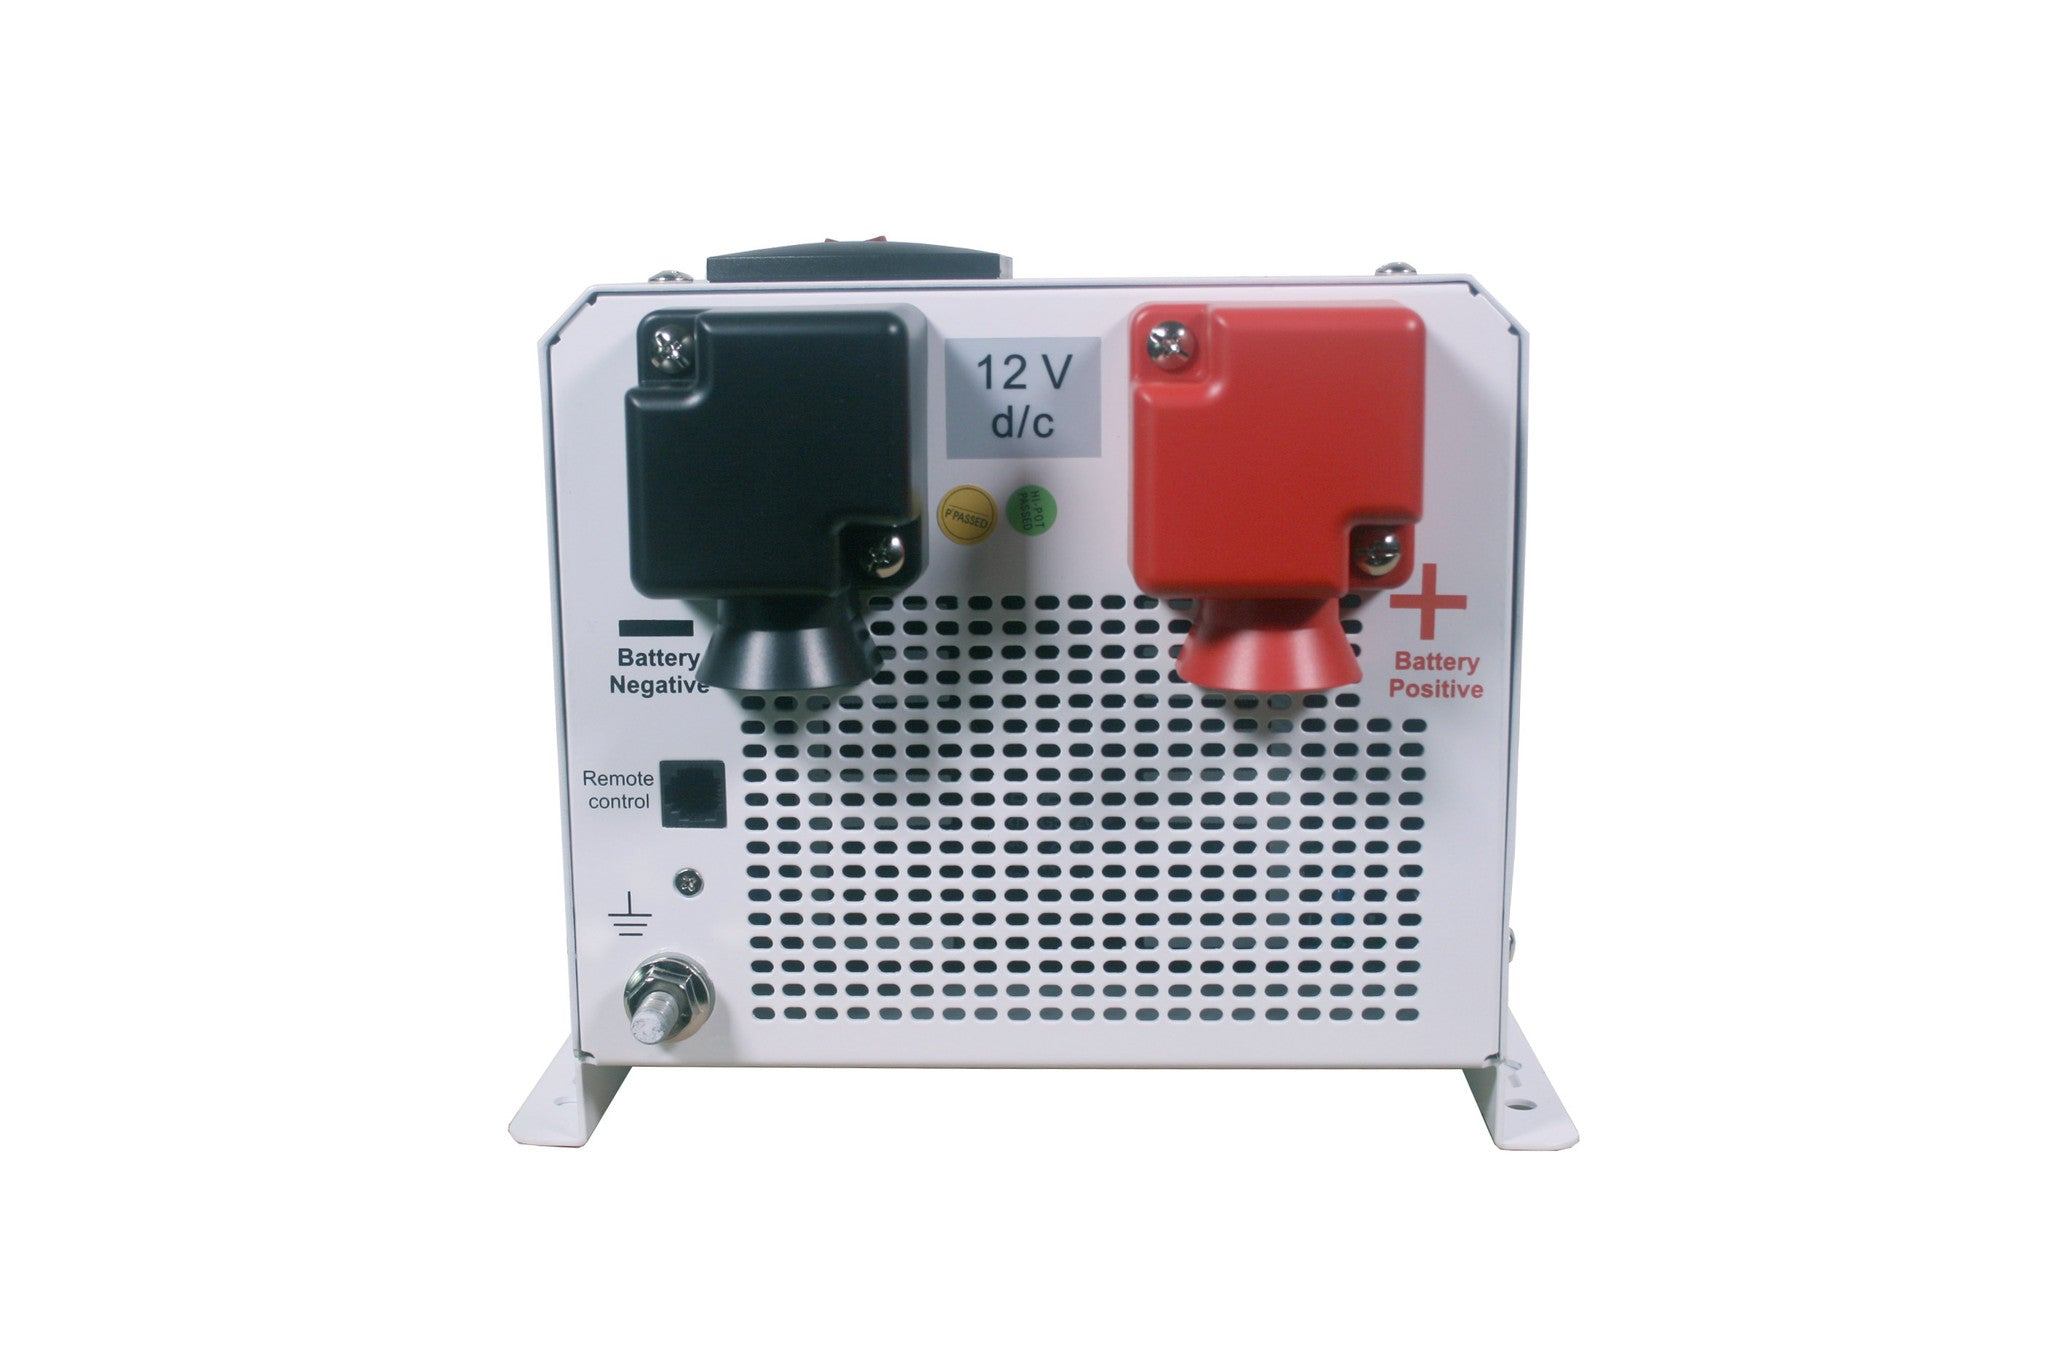 Pro Combi S Pure Sine Wave Inverter 12V 3500W | 100A charger (6 months Warranty Clearance)